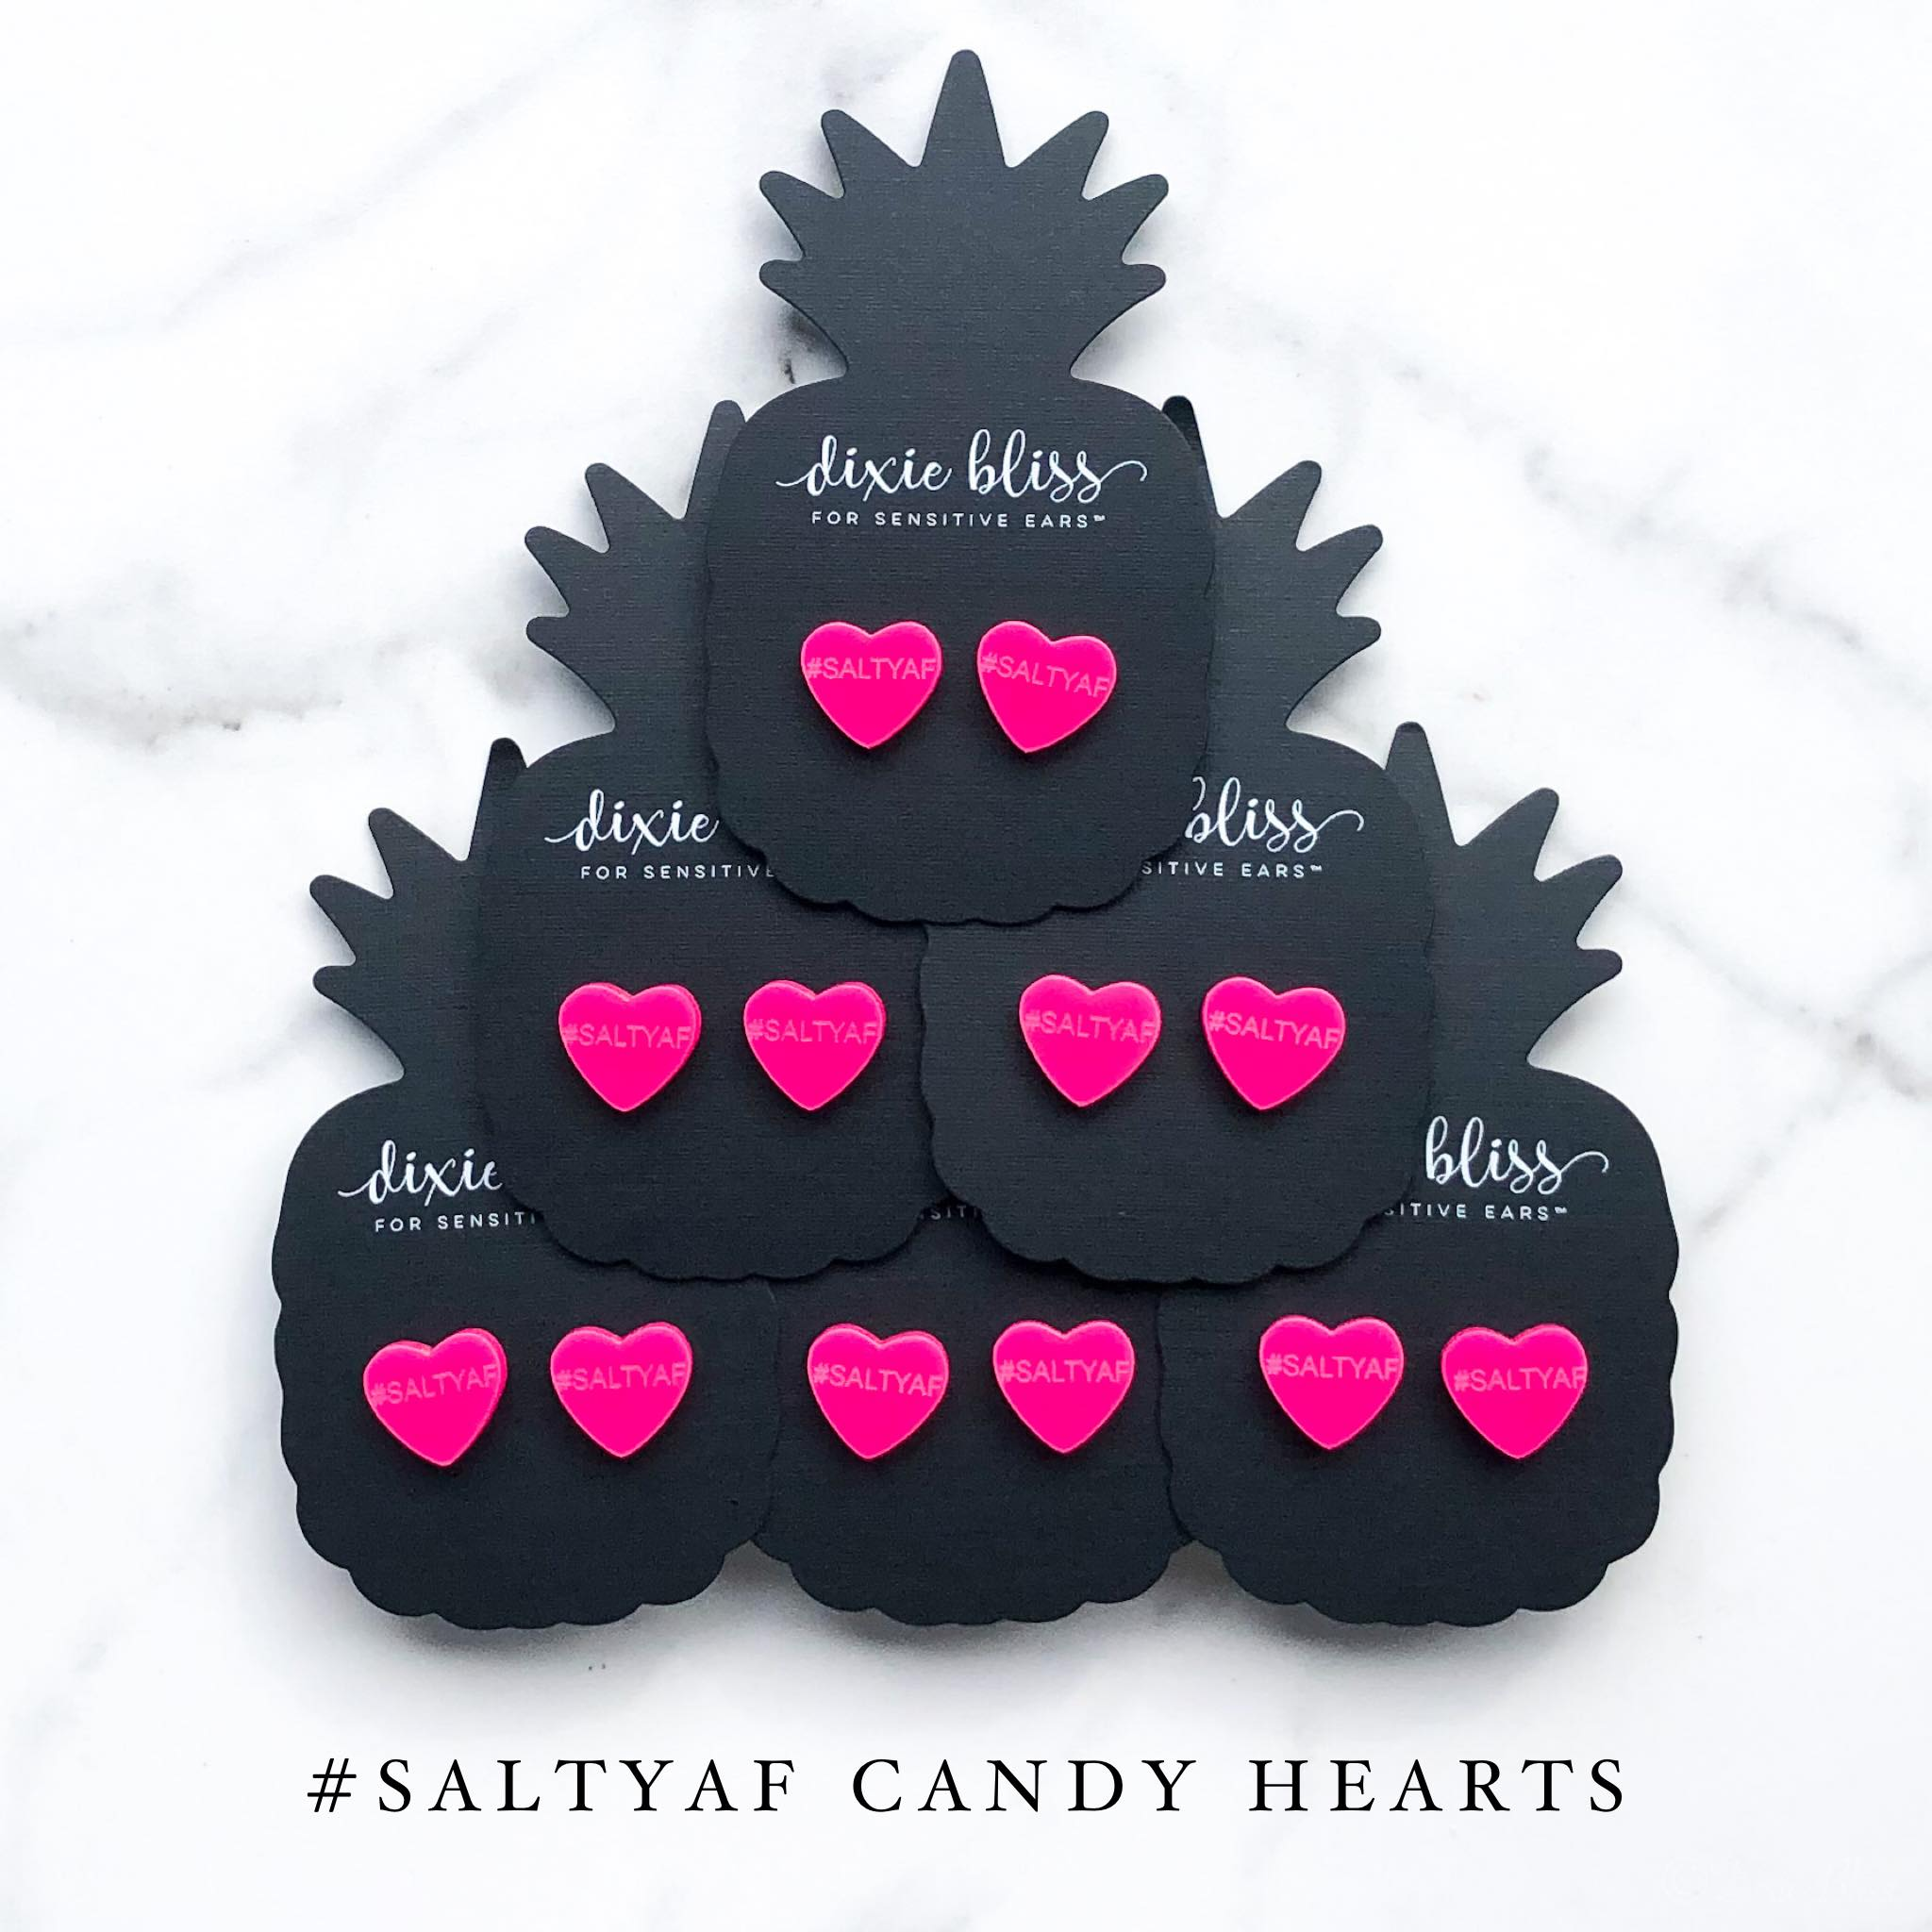 Salty AF Candy Hearts - Dixie Bliss Luxuries